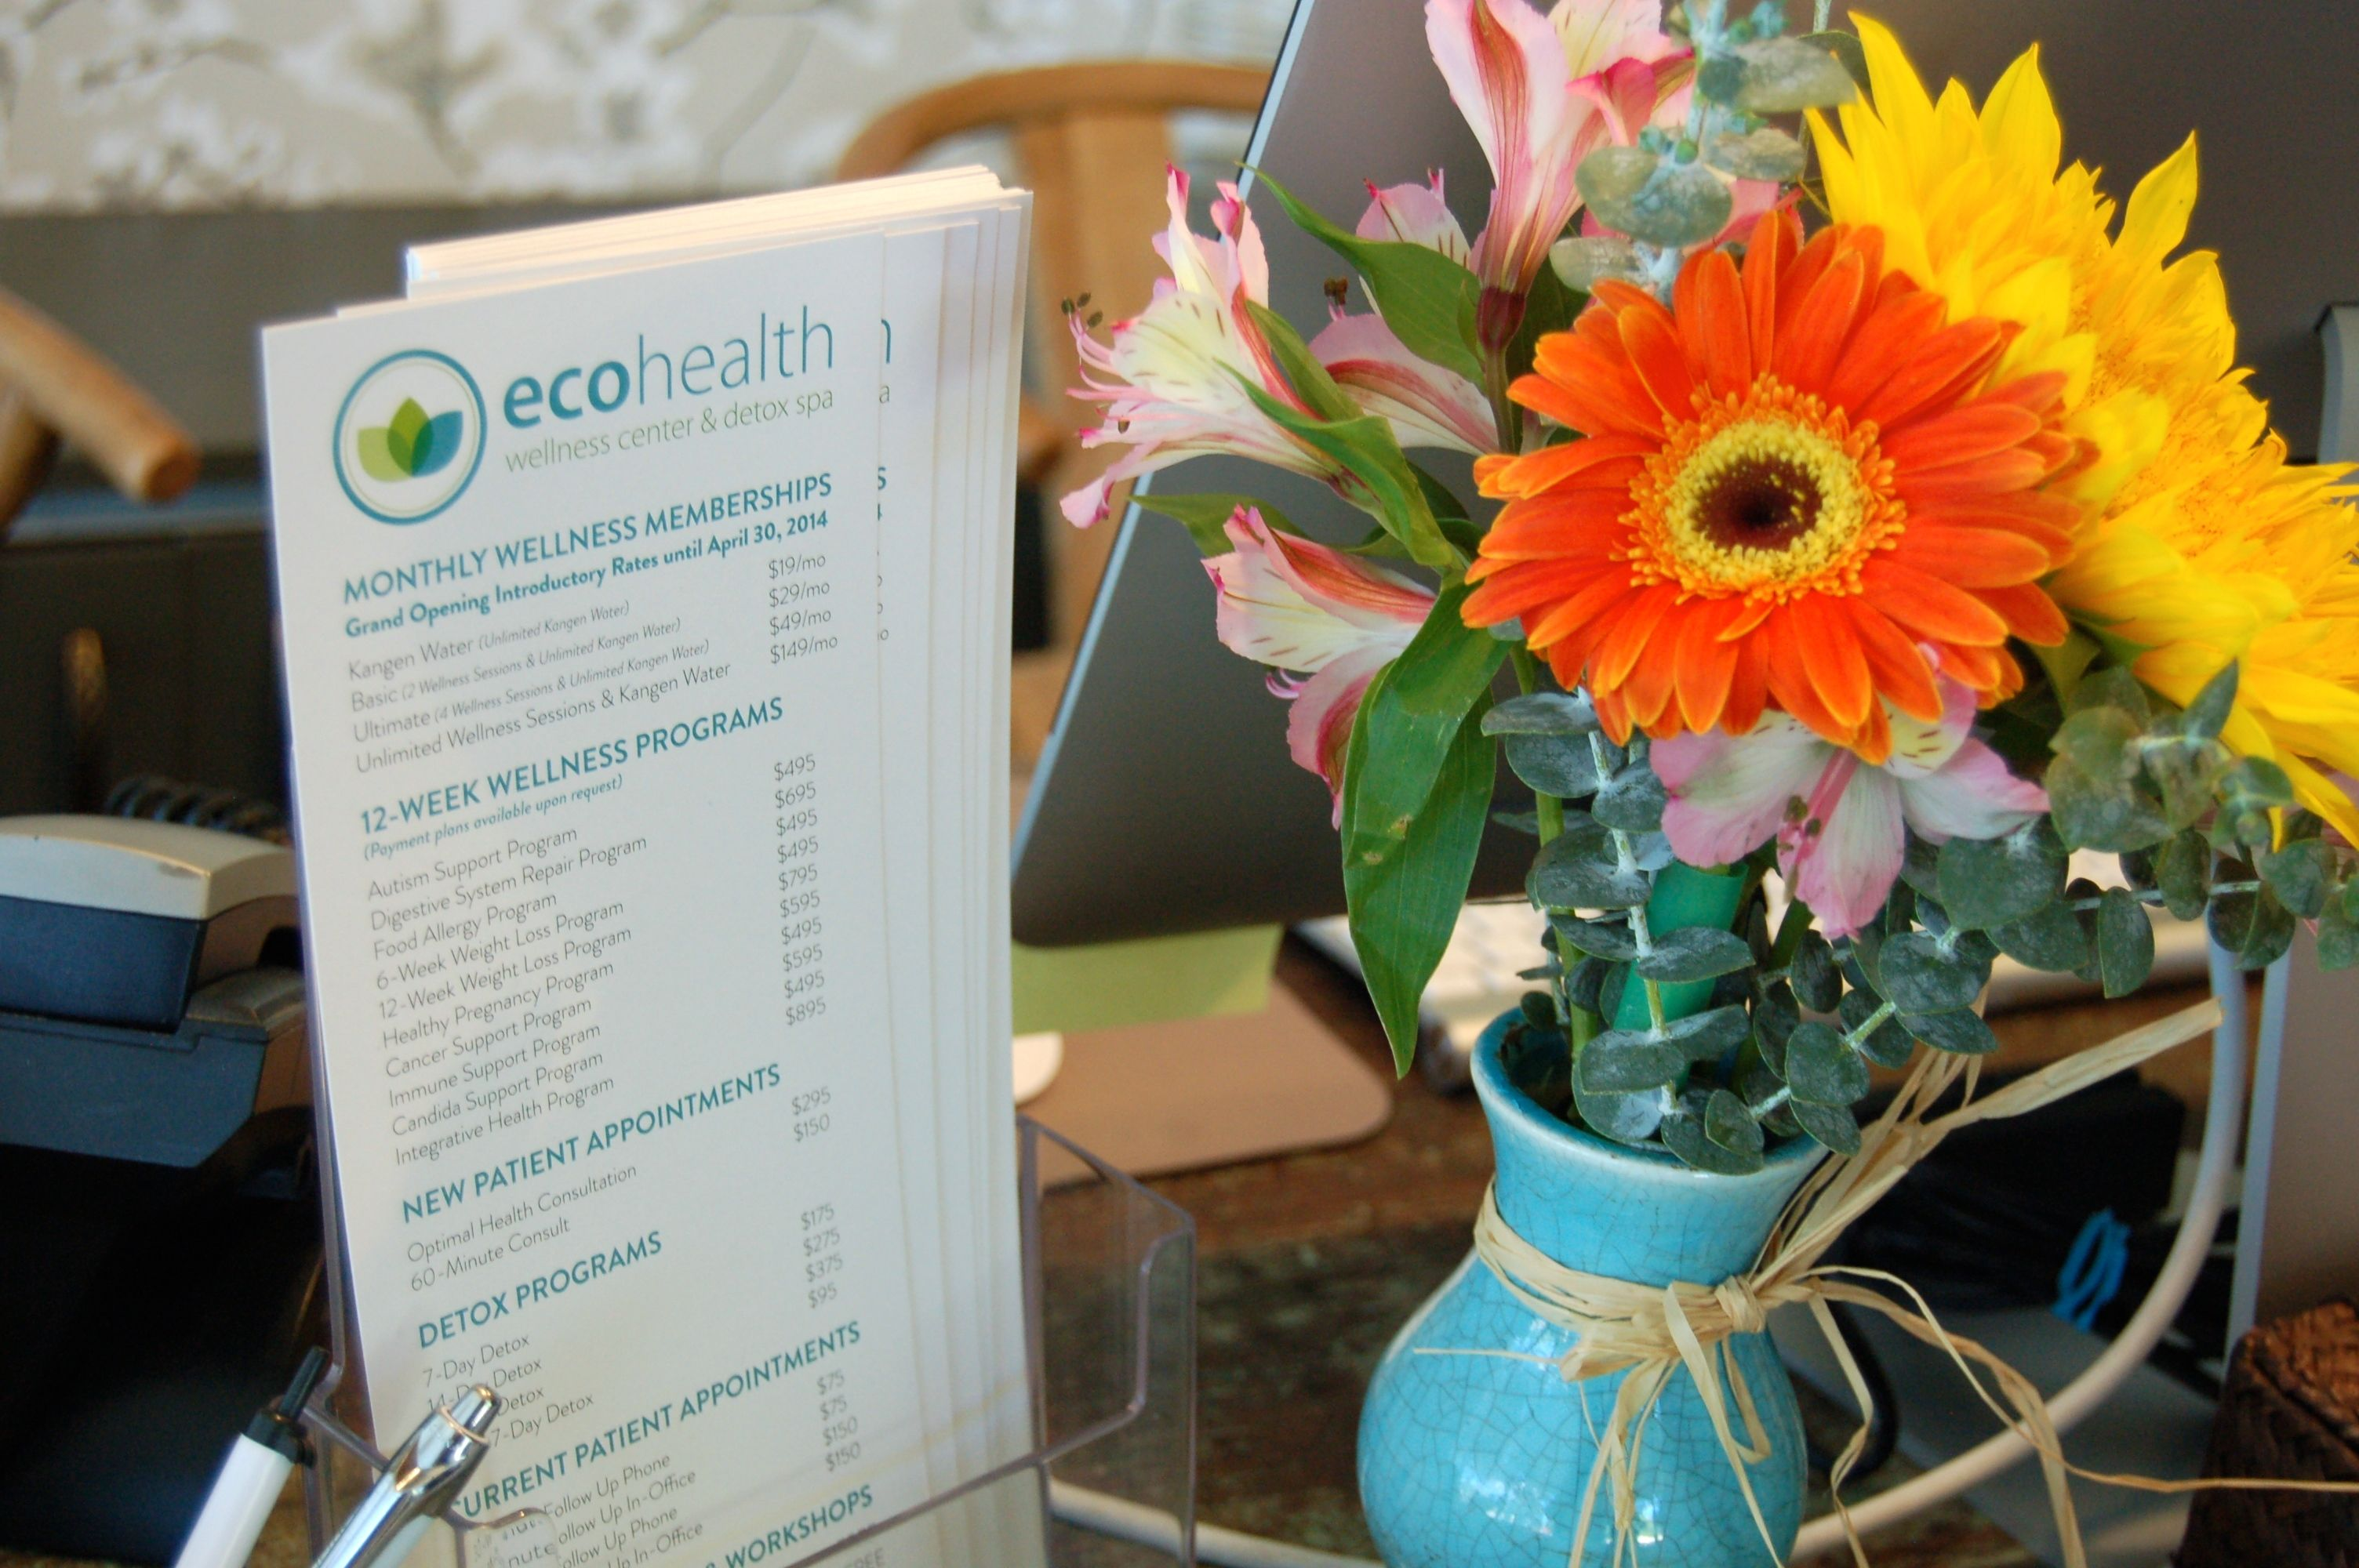 Come see what eco health is all about mount pleasant sc